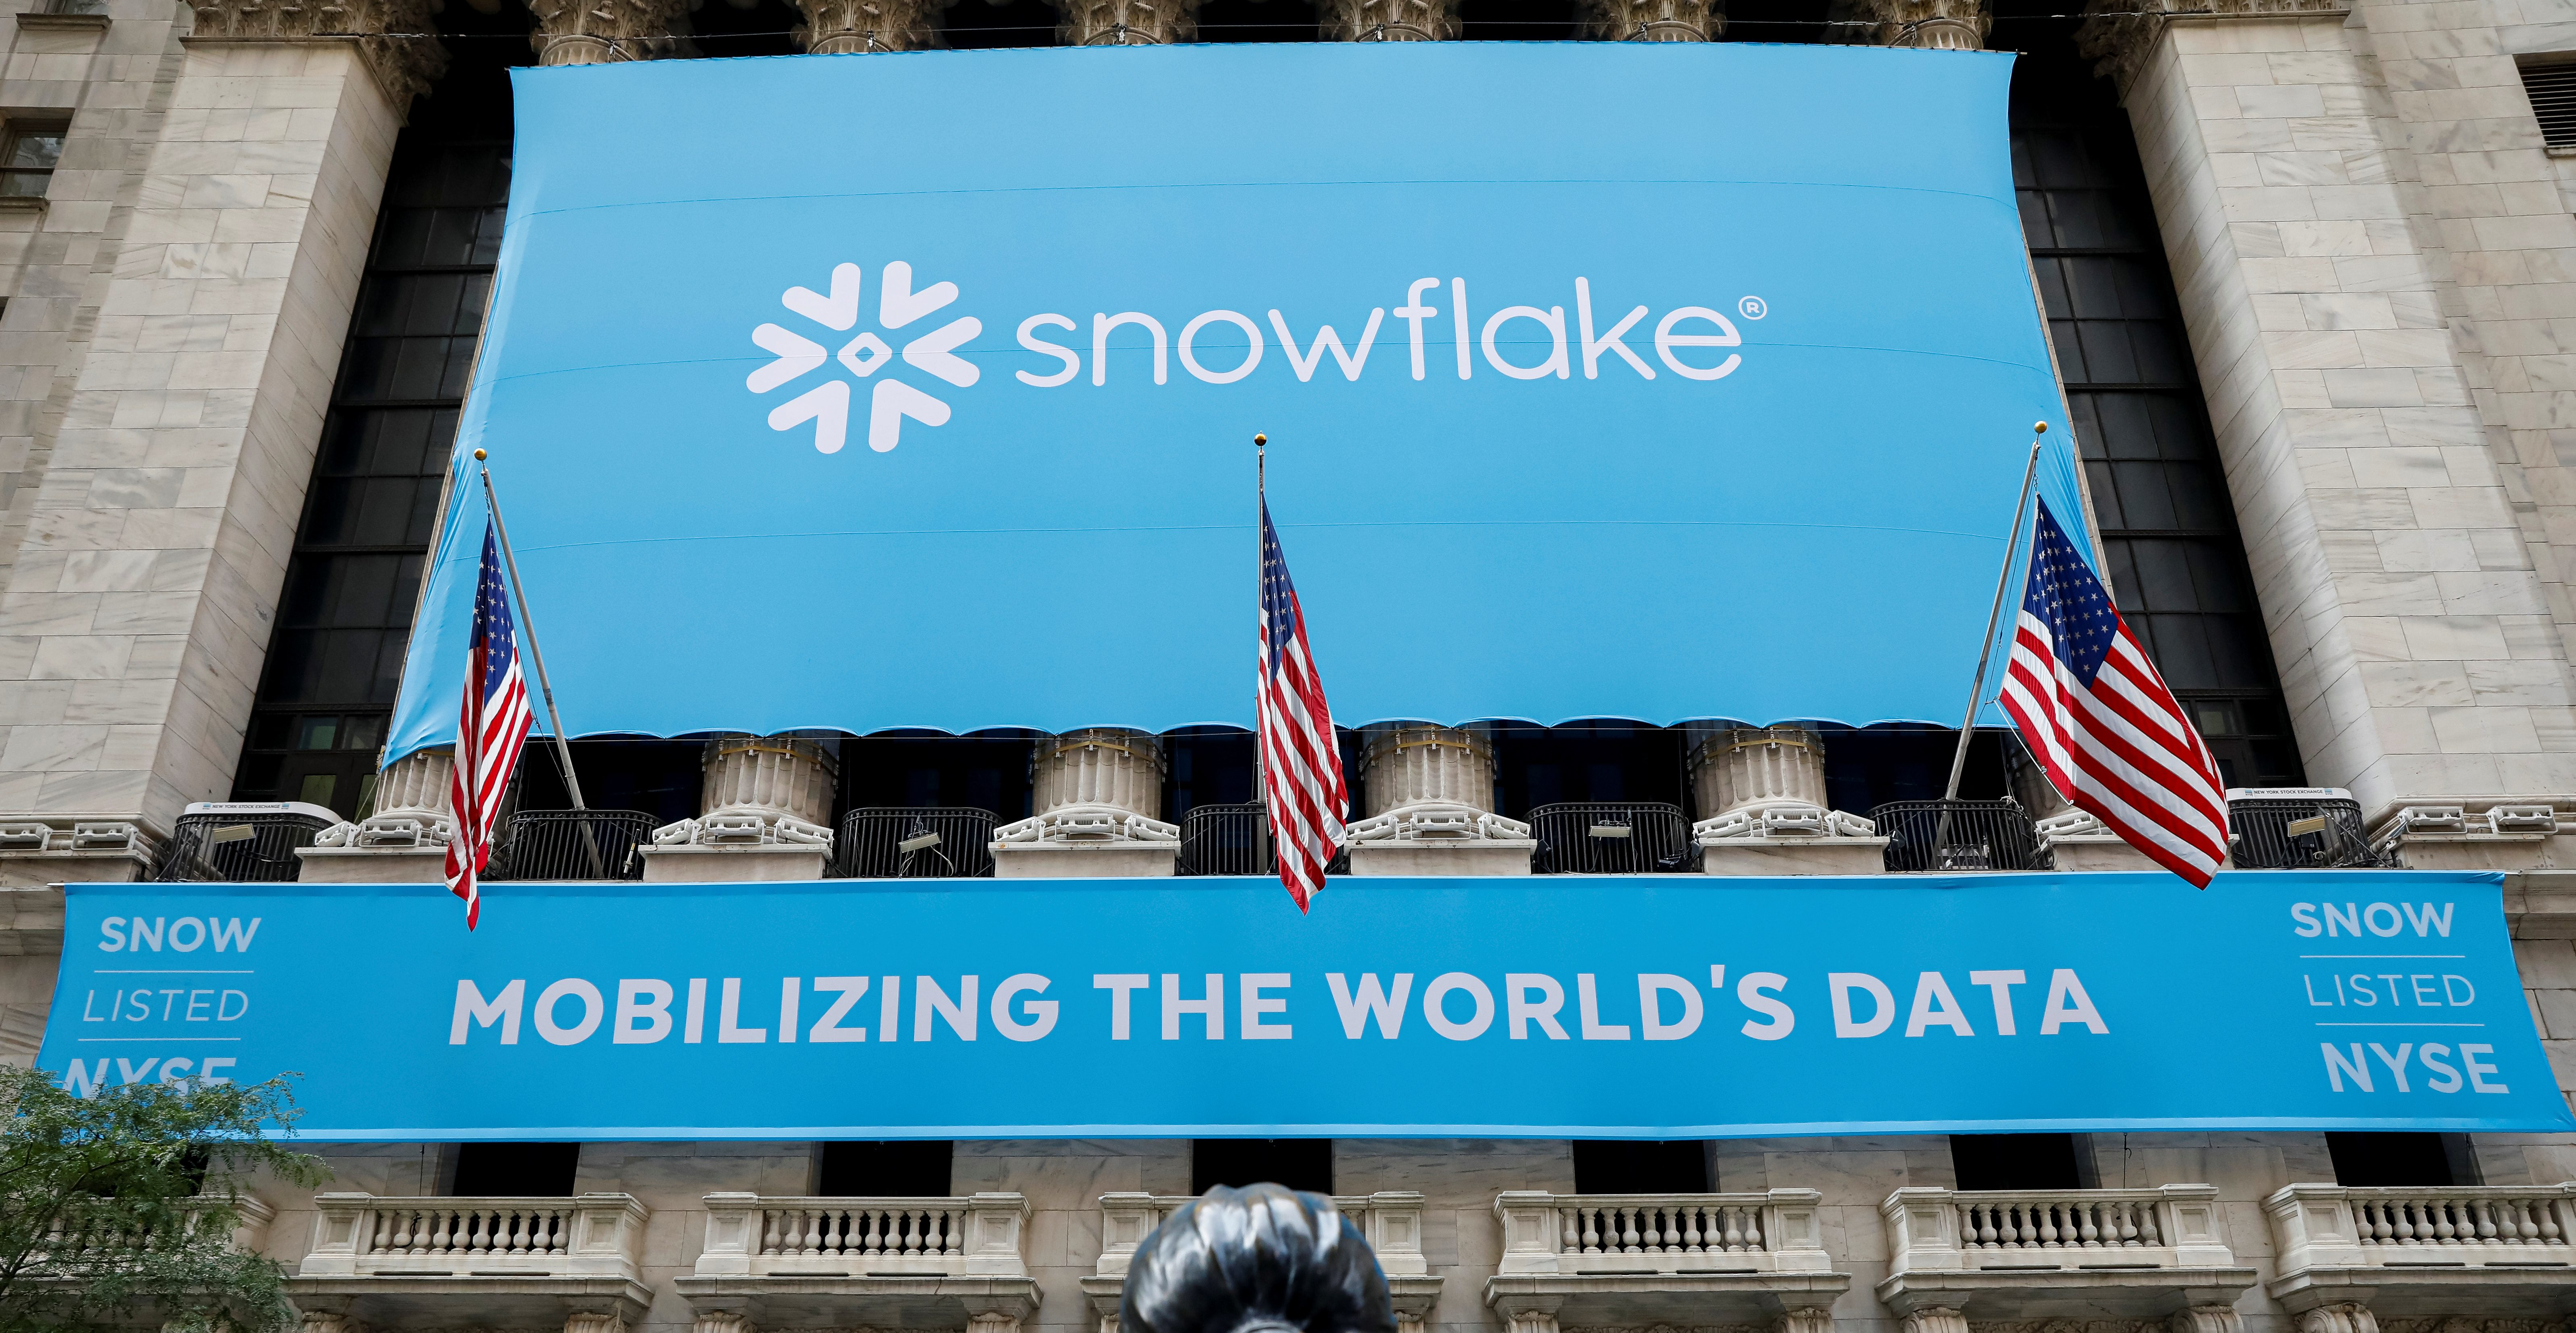 A banner for Snowflake Inc. is displayed celebrating the company's IPO